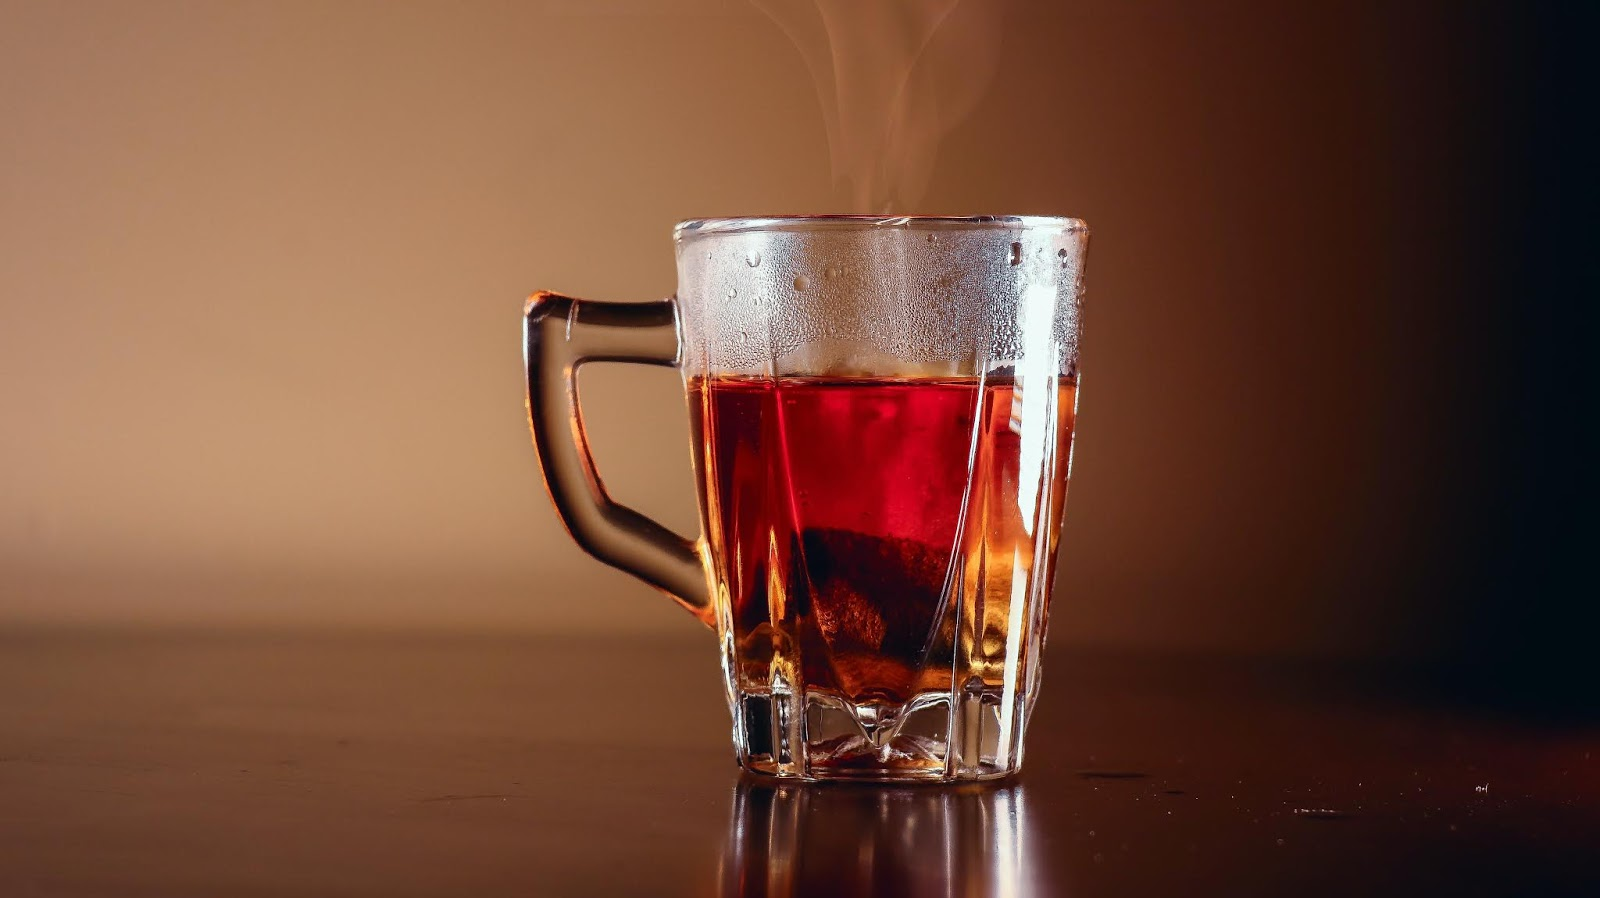 Check The Top 10 Widely Consumed Drinks in The World - Not Counting Water!